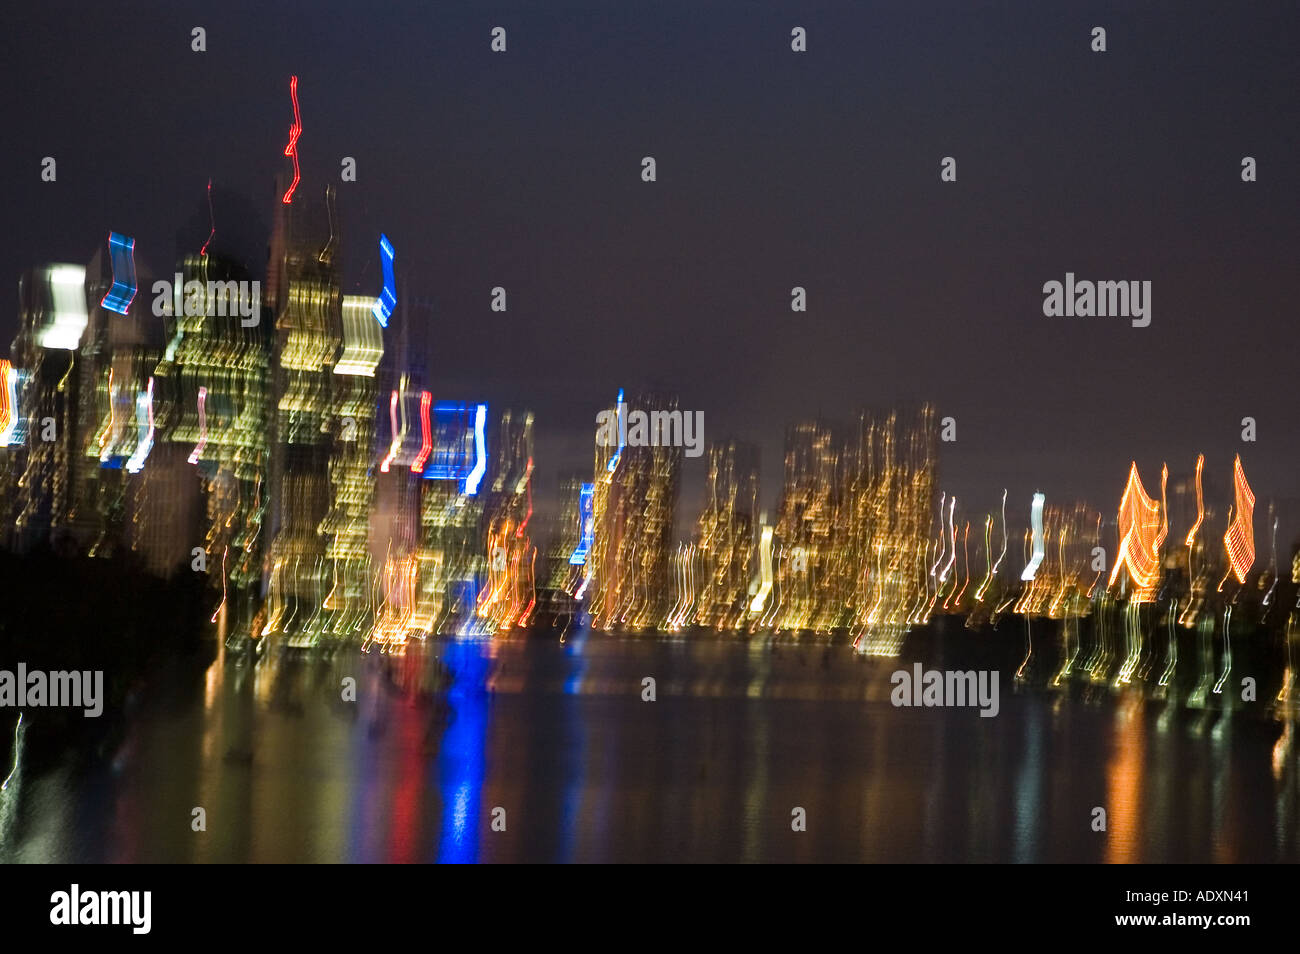 Brisbane at night 3758 - Stock Image